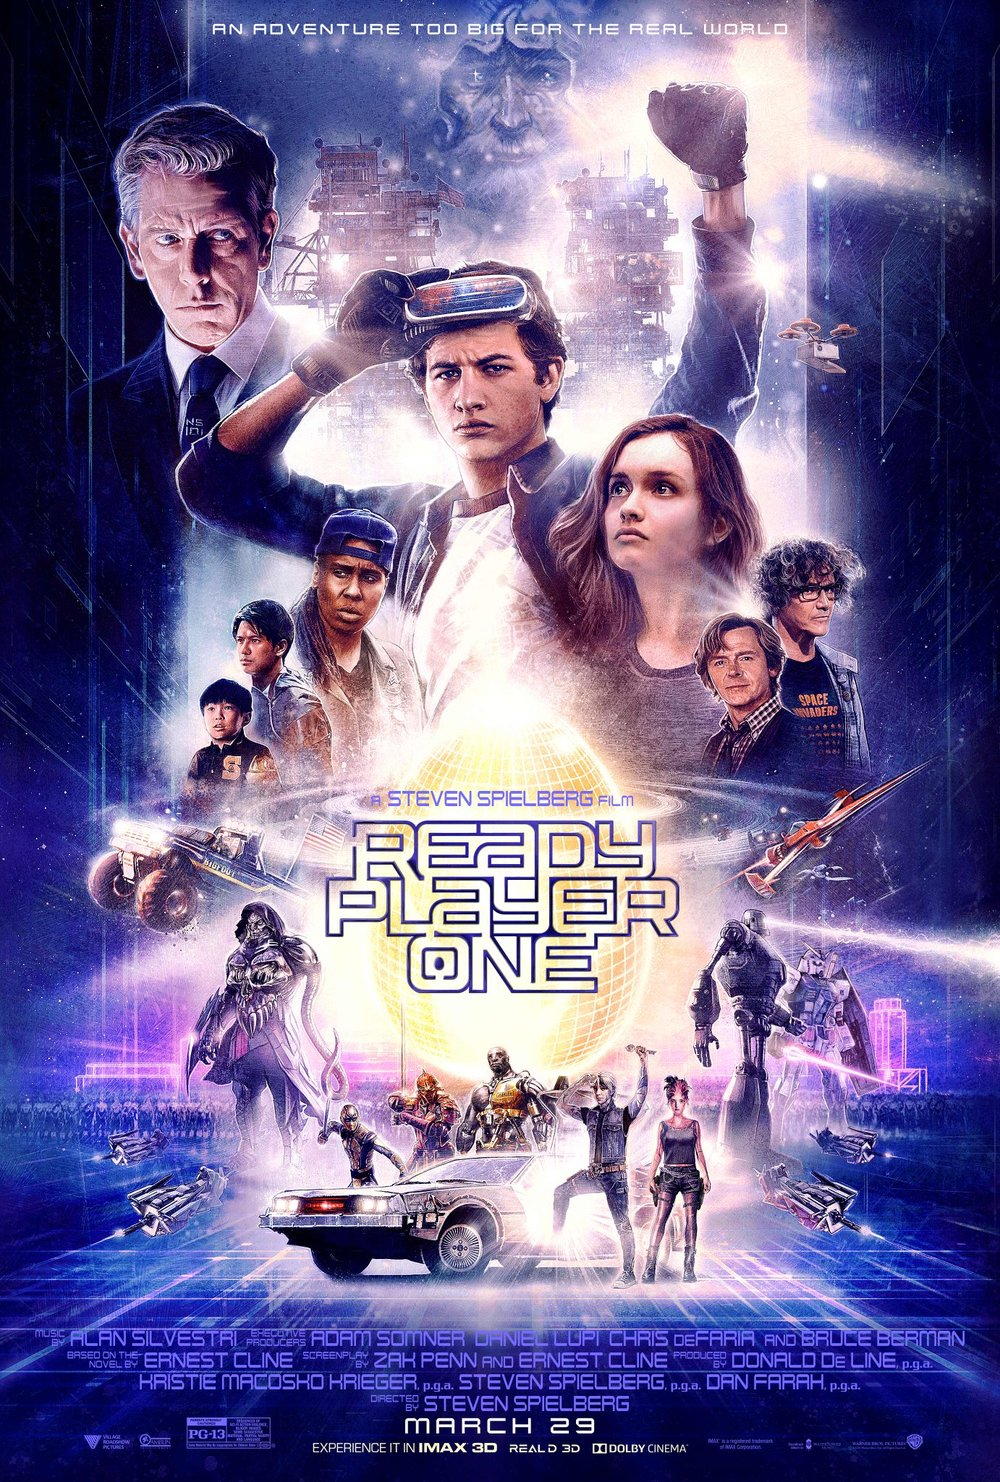 READY PLAYER ONE BOOK VERSUS MOVIE ESSAY